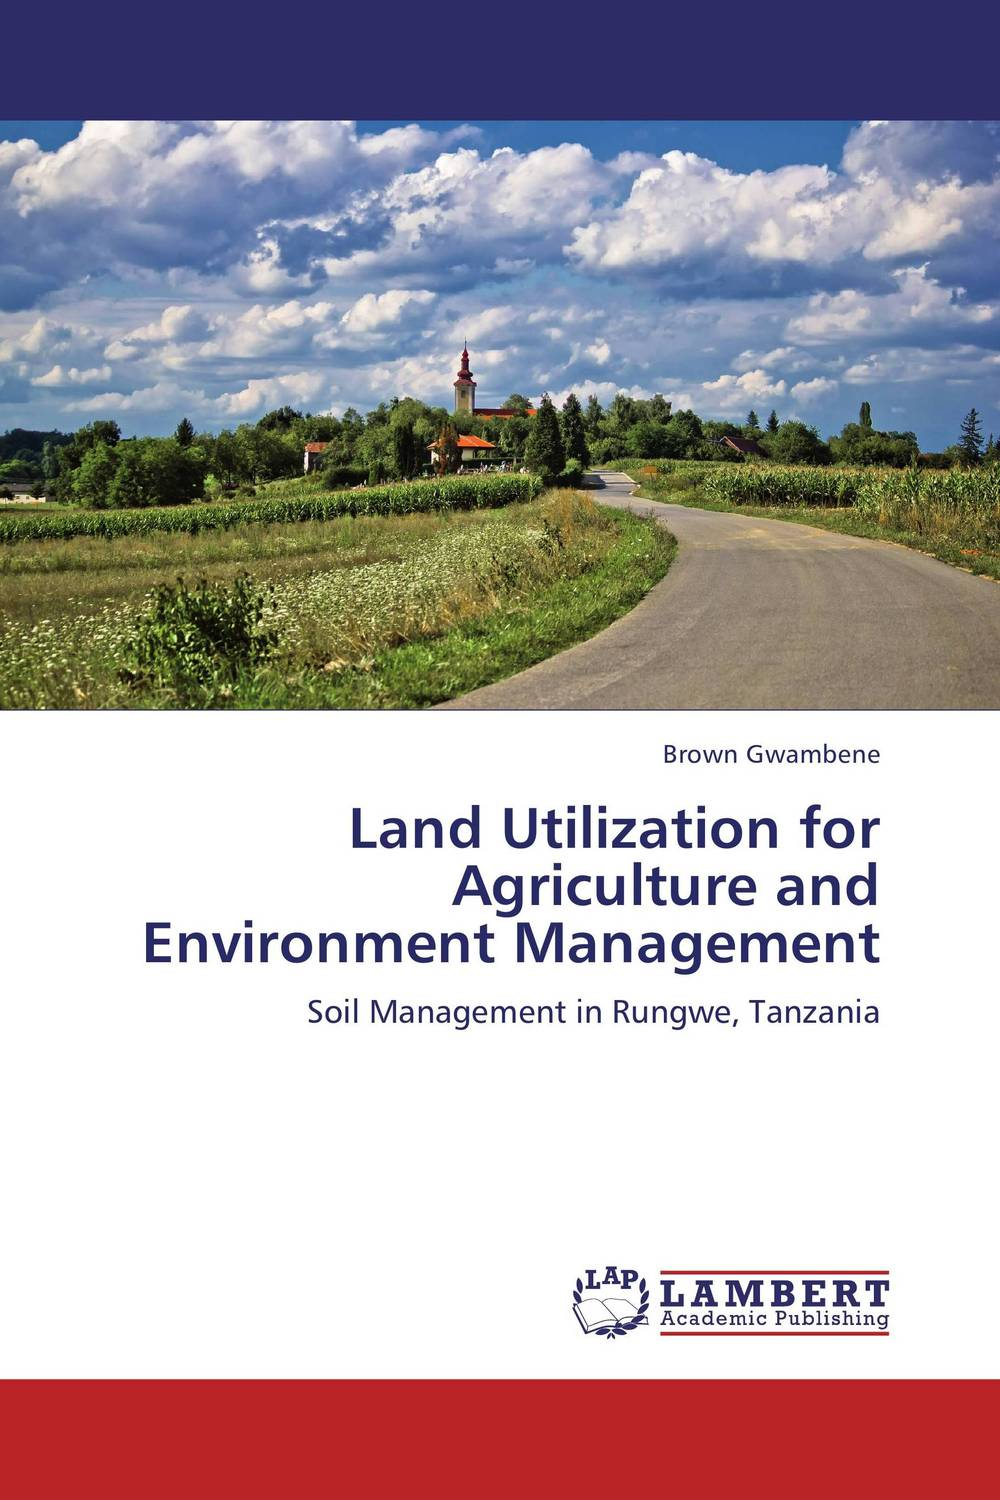 Land Utilization for Agriculture and Environment Management pastoralism and agriculture pennar basin india